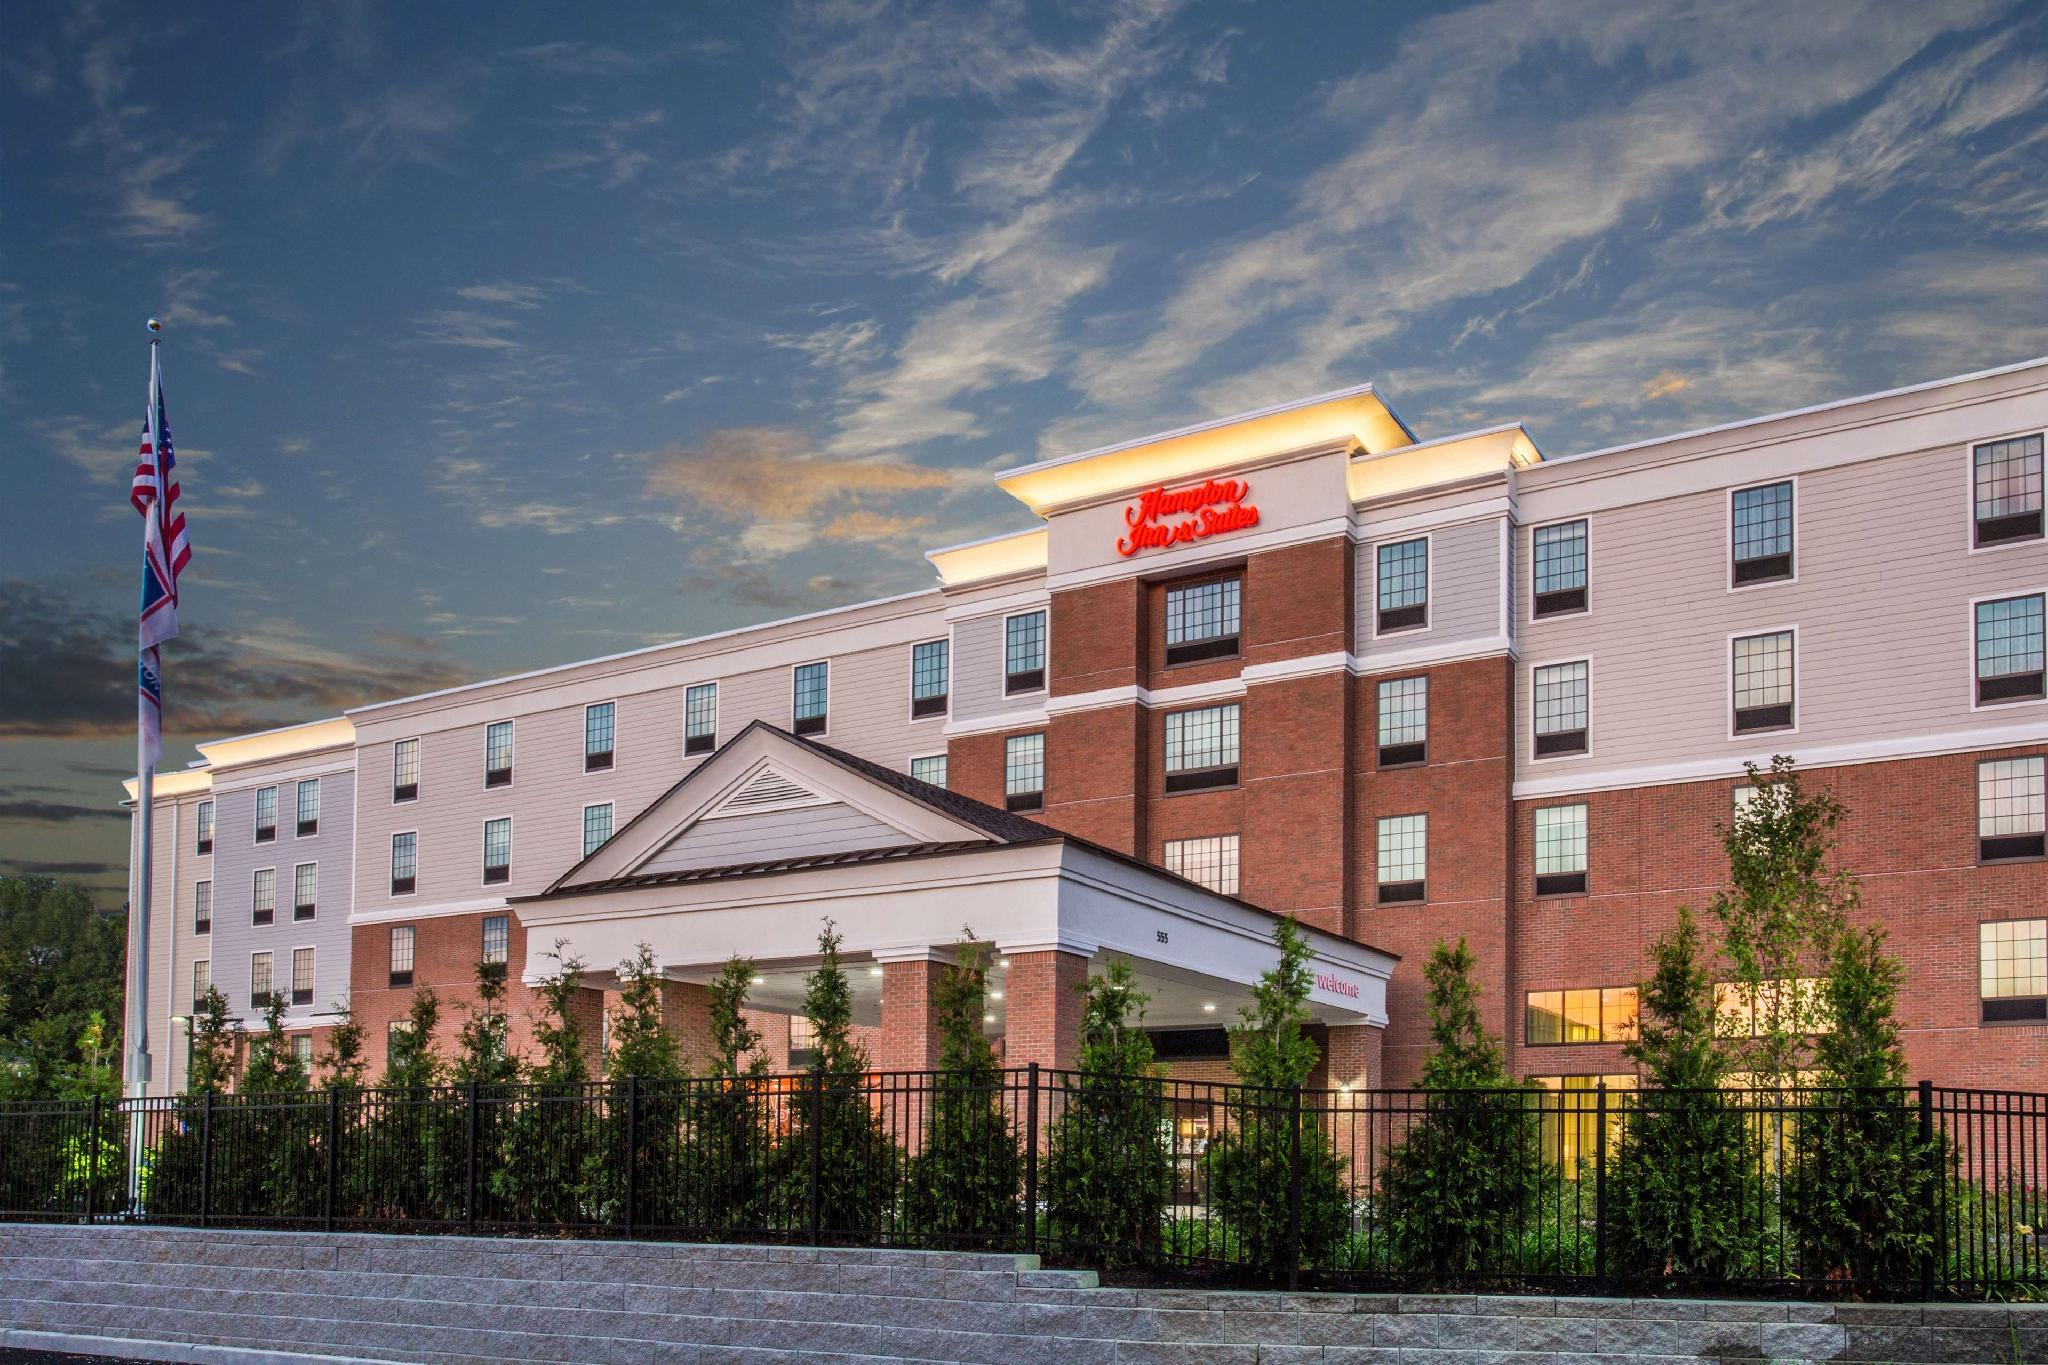 Hampton Inn and Suites Yonkers Westchester, Westchester